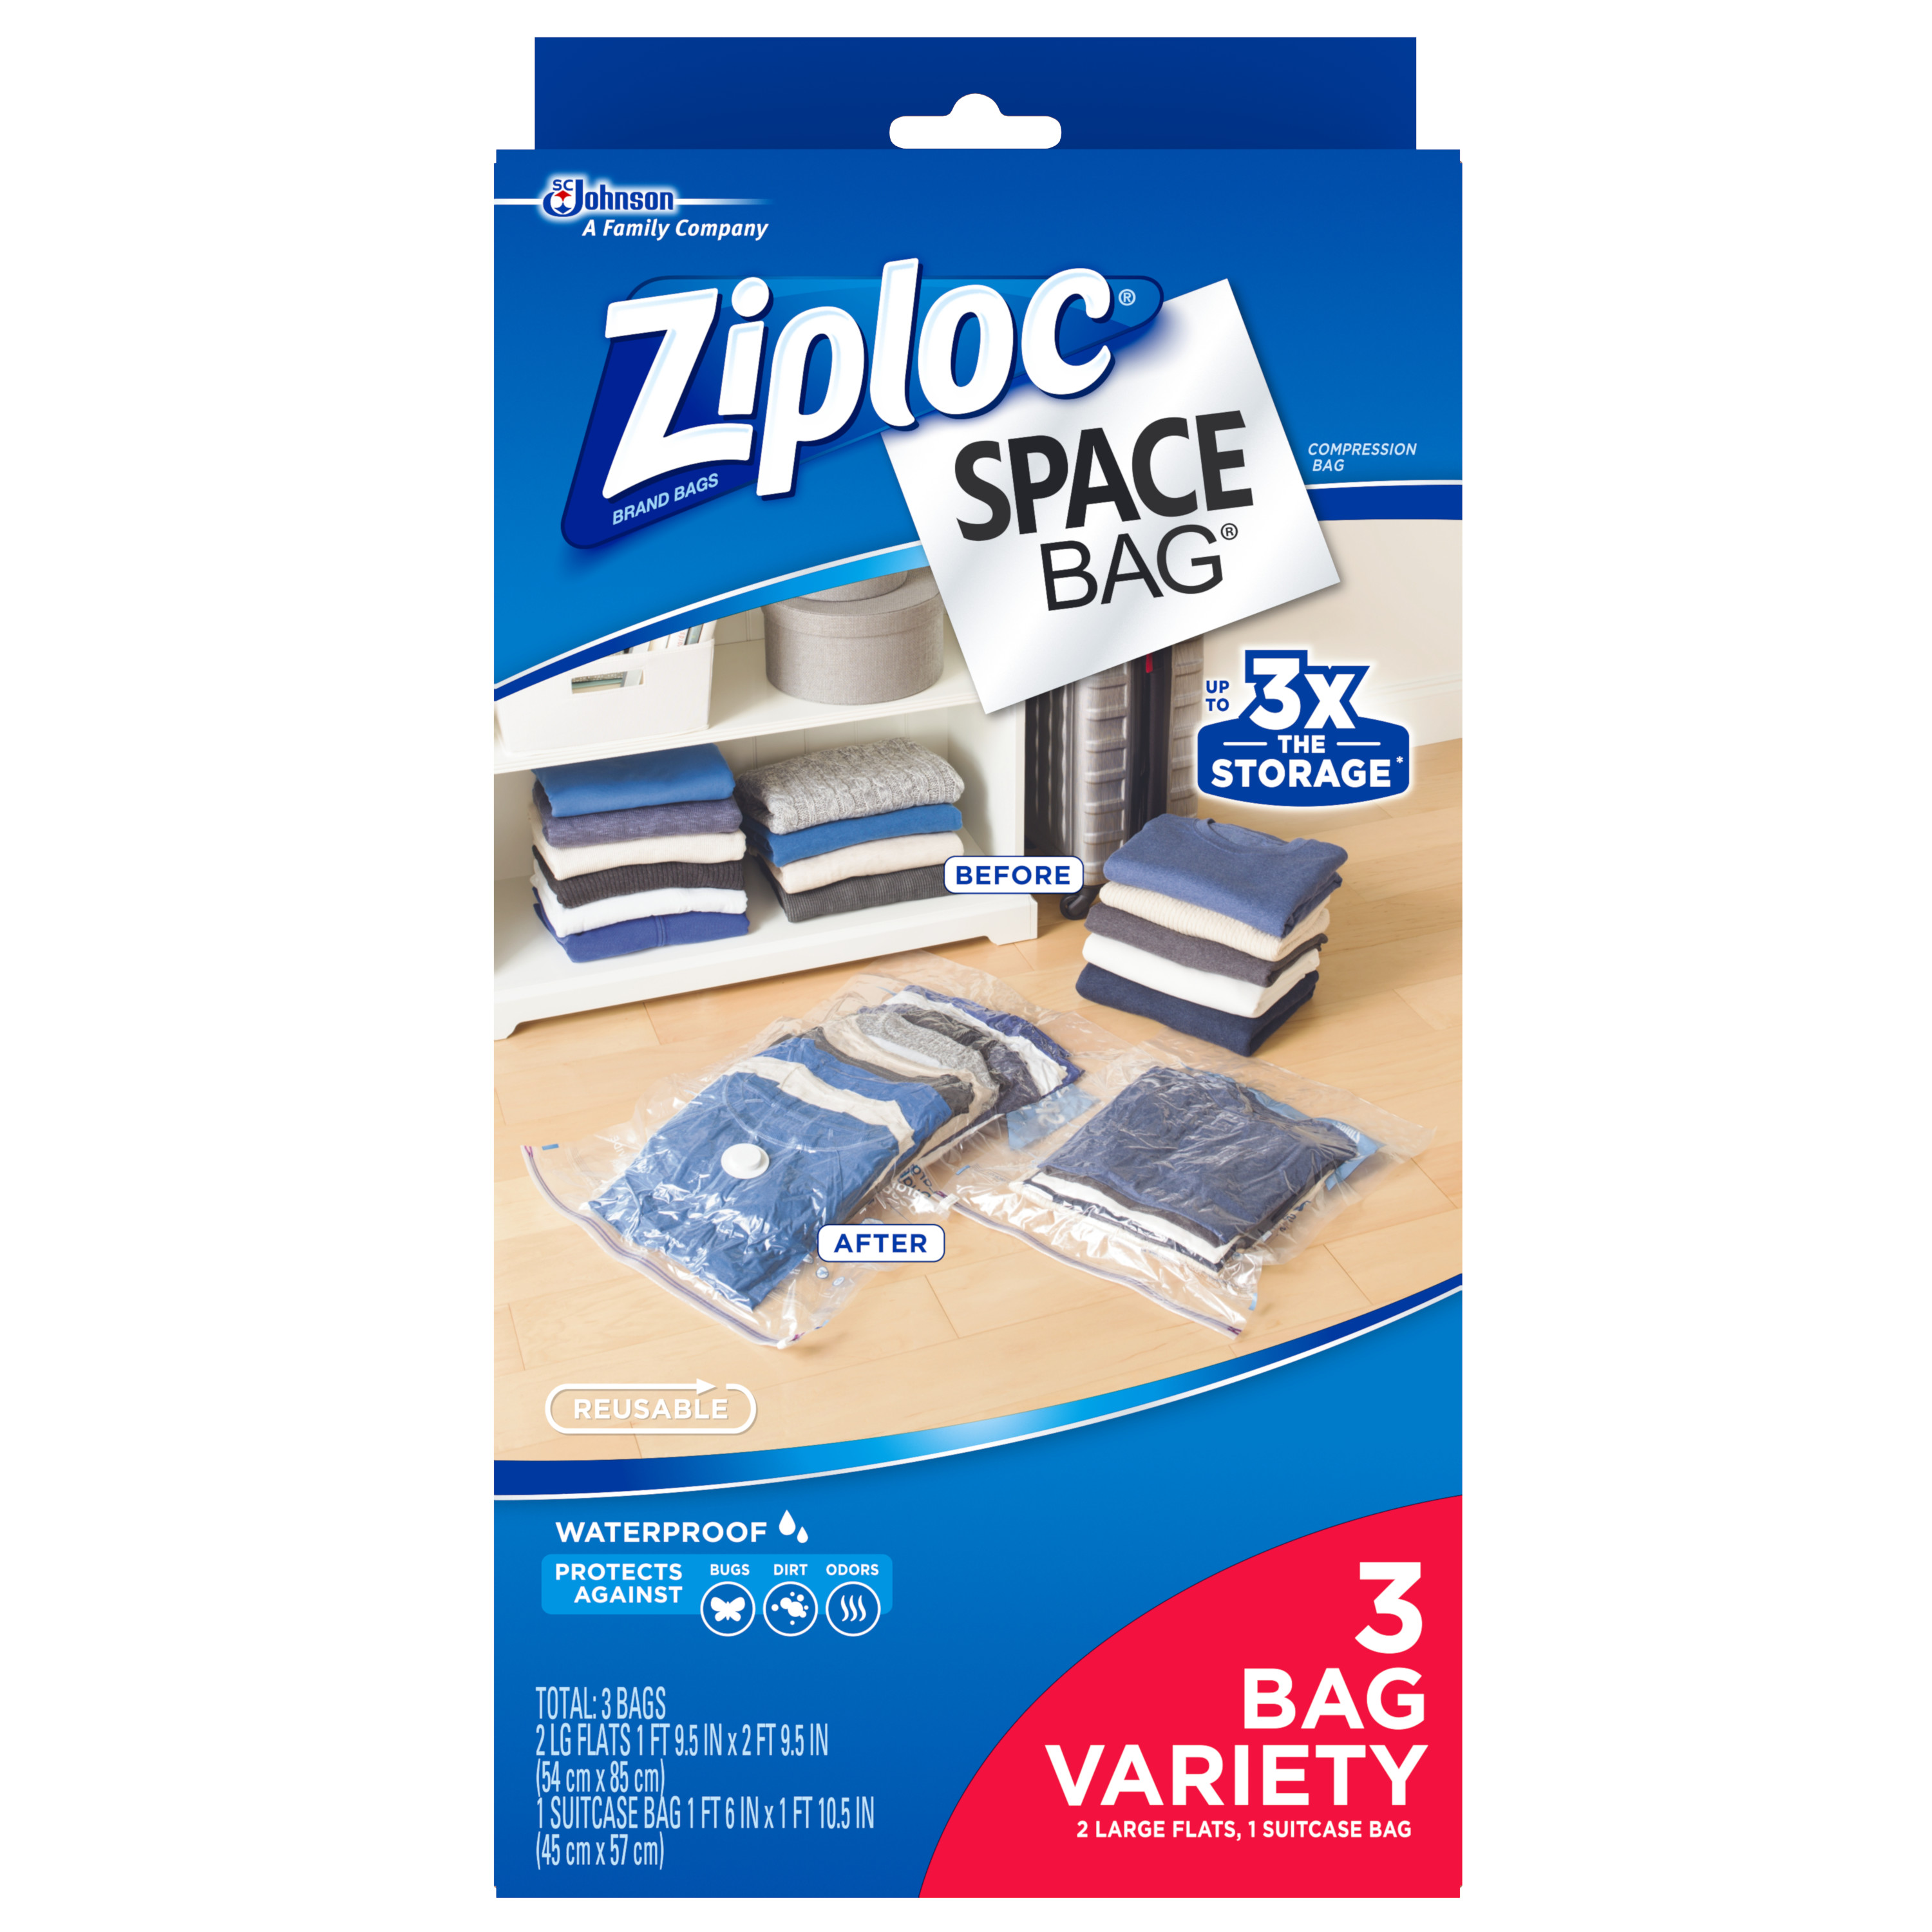 Ziploc Space Bag 3 count Variety Pack (2 Large Flat Bags, 1 Travel Bag)